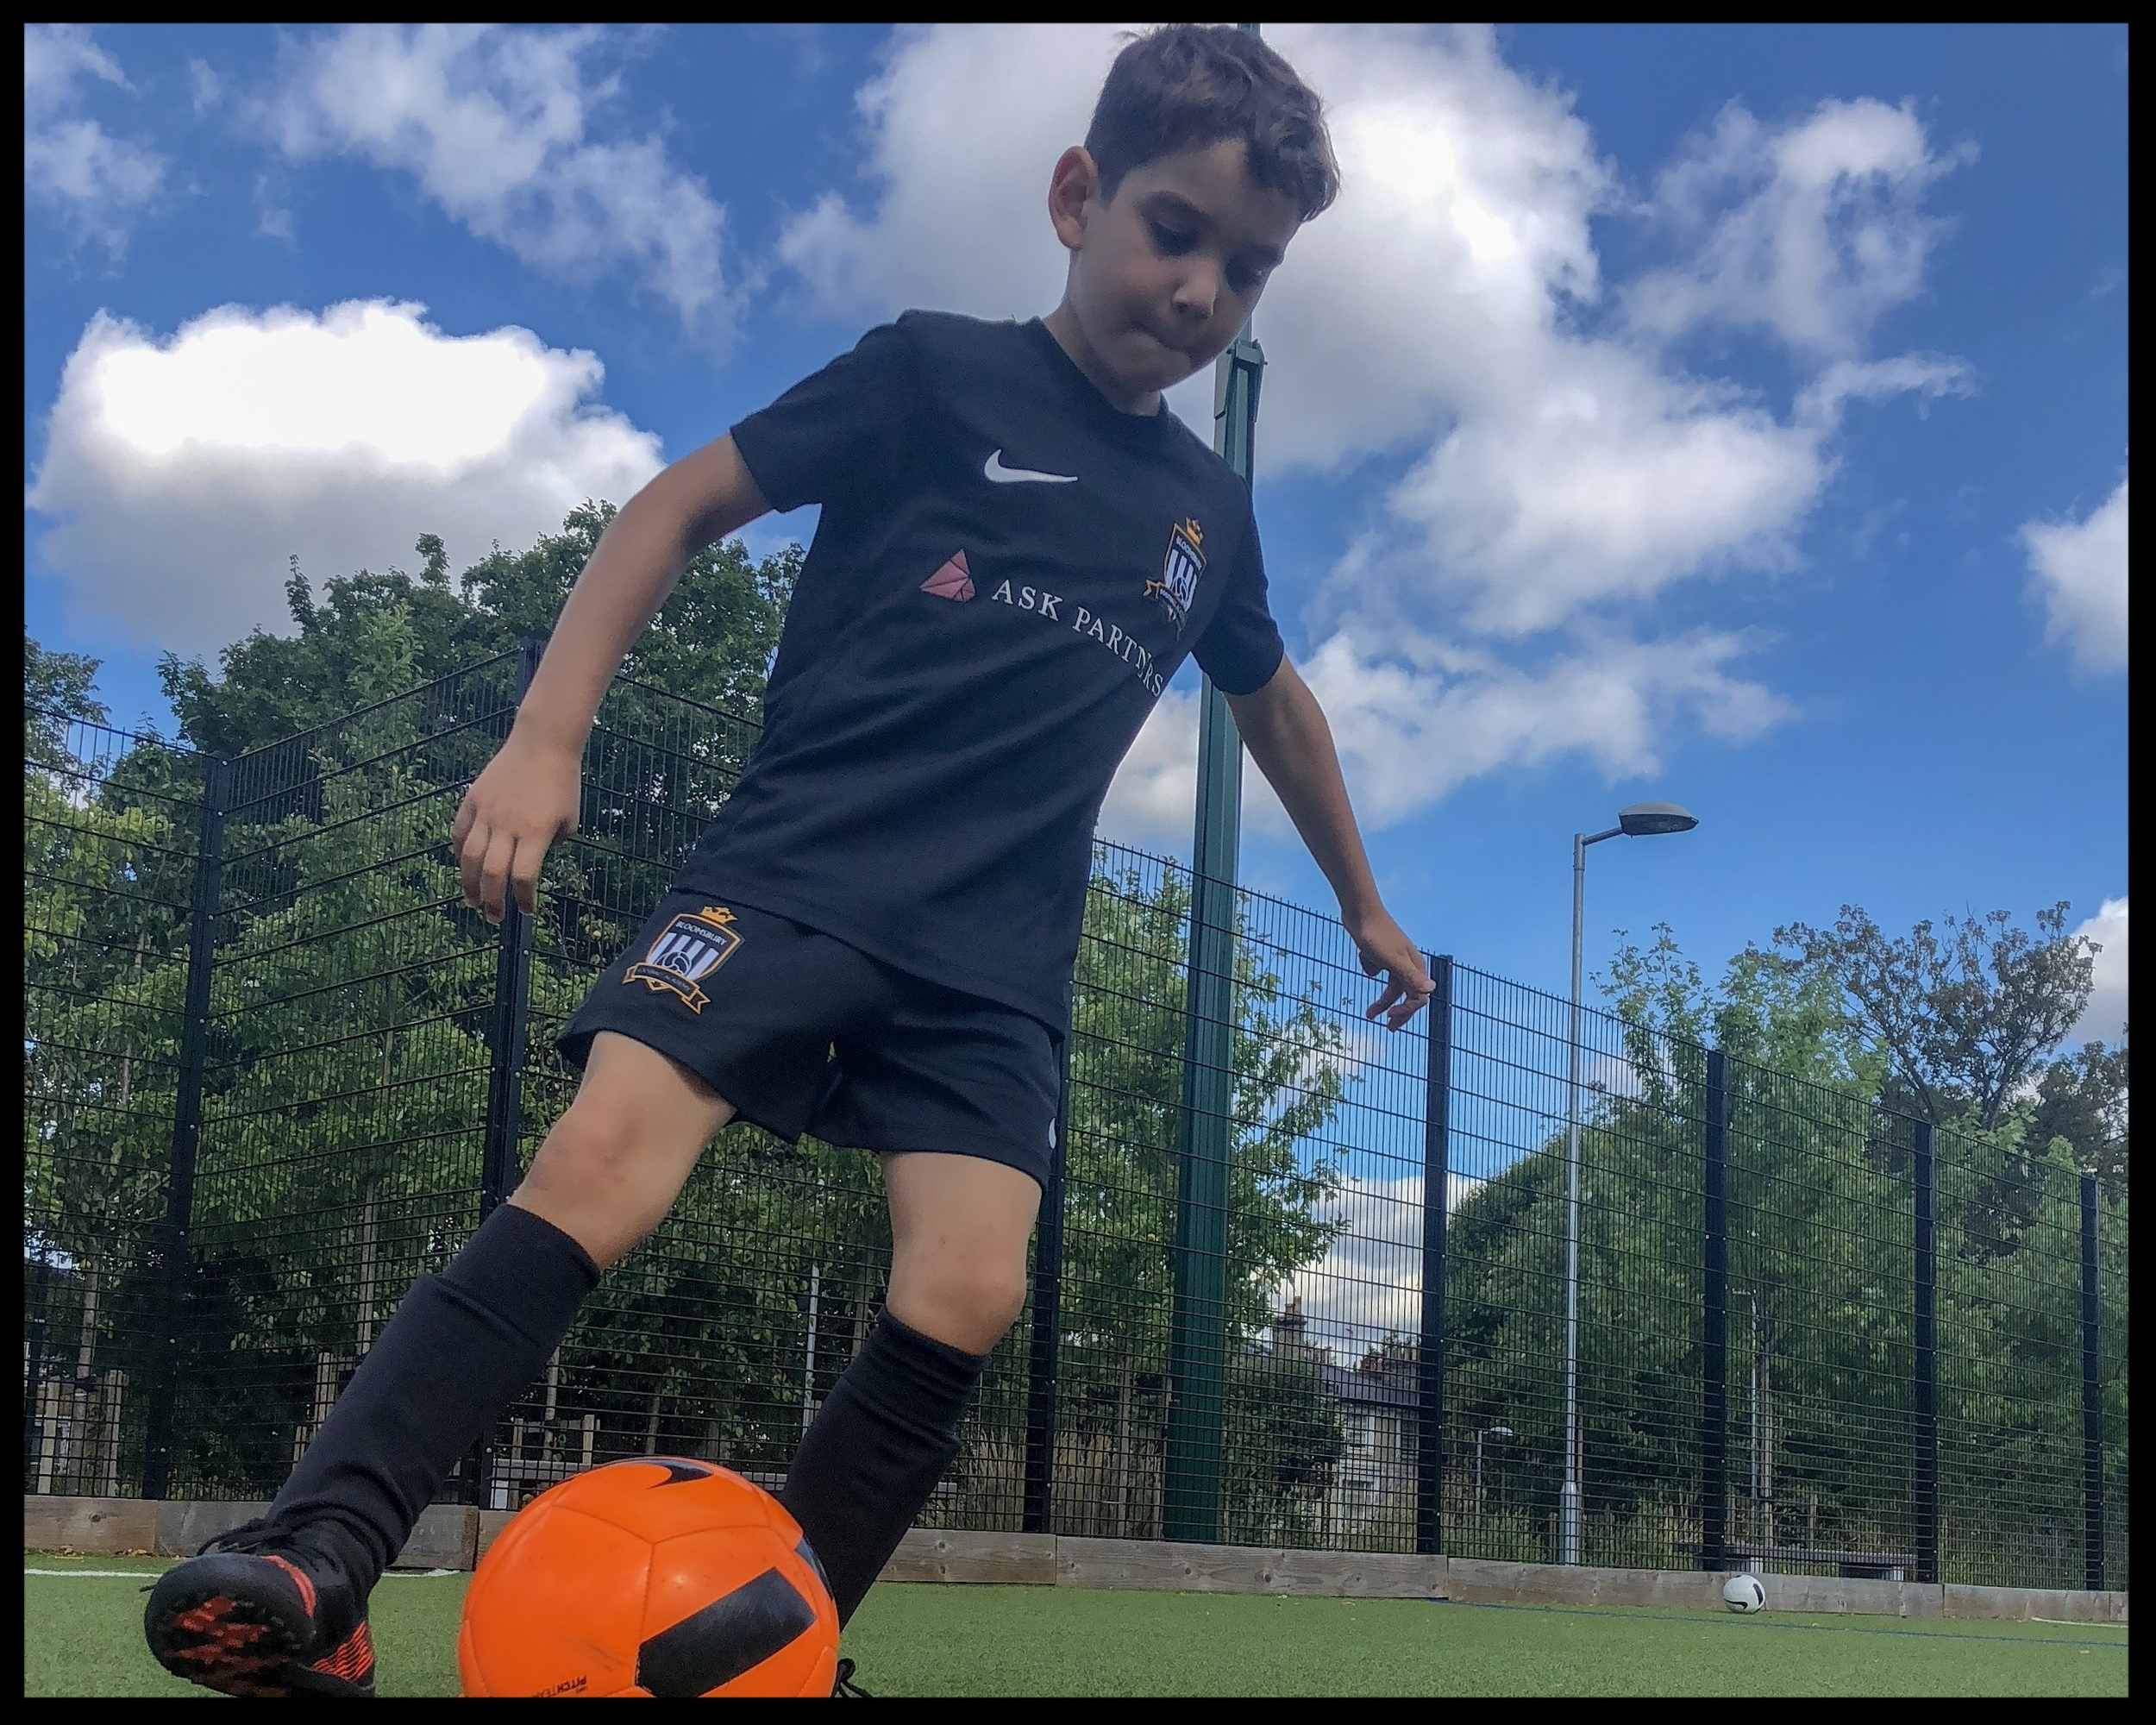 FOOTBALL, FUTSAL & MULTI-SPORTS COURSE - HARRIS ACADEMY, ST JOHN'S WOOD, MARLBOROUGH HILL, NW8 0NLOutdoor 3g astroturf pitch & indoor sports hall9AM - 4PM (EXTENDED DAYS AVAILABLE)WEDNESDAY 2ND JANUARY - FRIDAY 4TH JANUARY 2019AGES: 4 -13 (School Years: YEAR 1 - 8)PRICE: £40 PER DAY (FINANCIAL ASSISTANCE AVAILABLE)